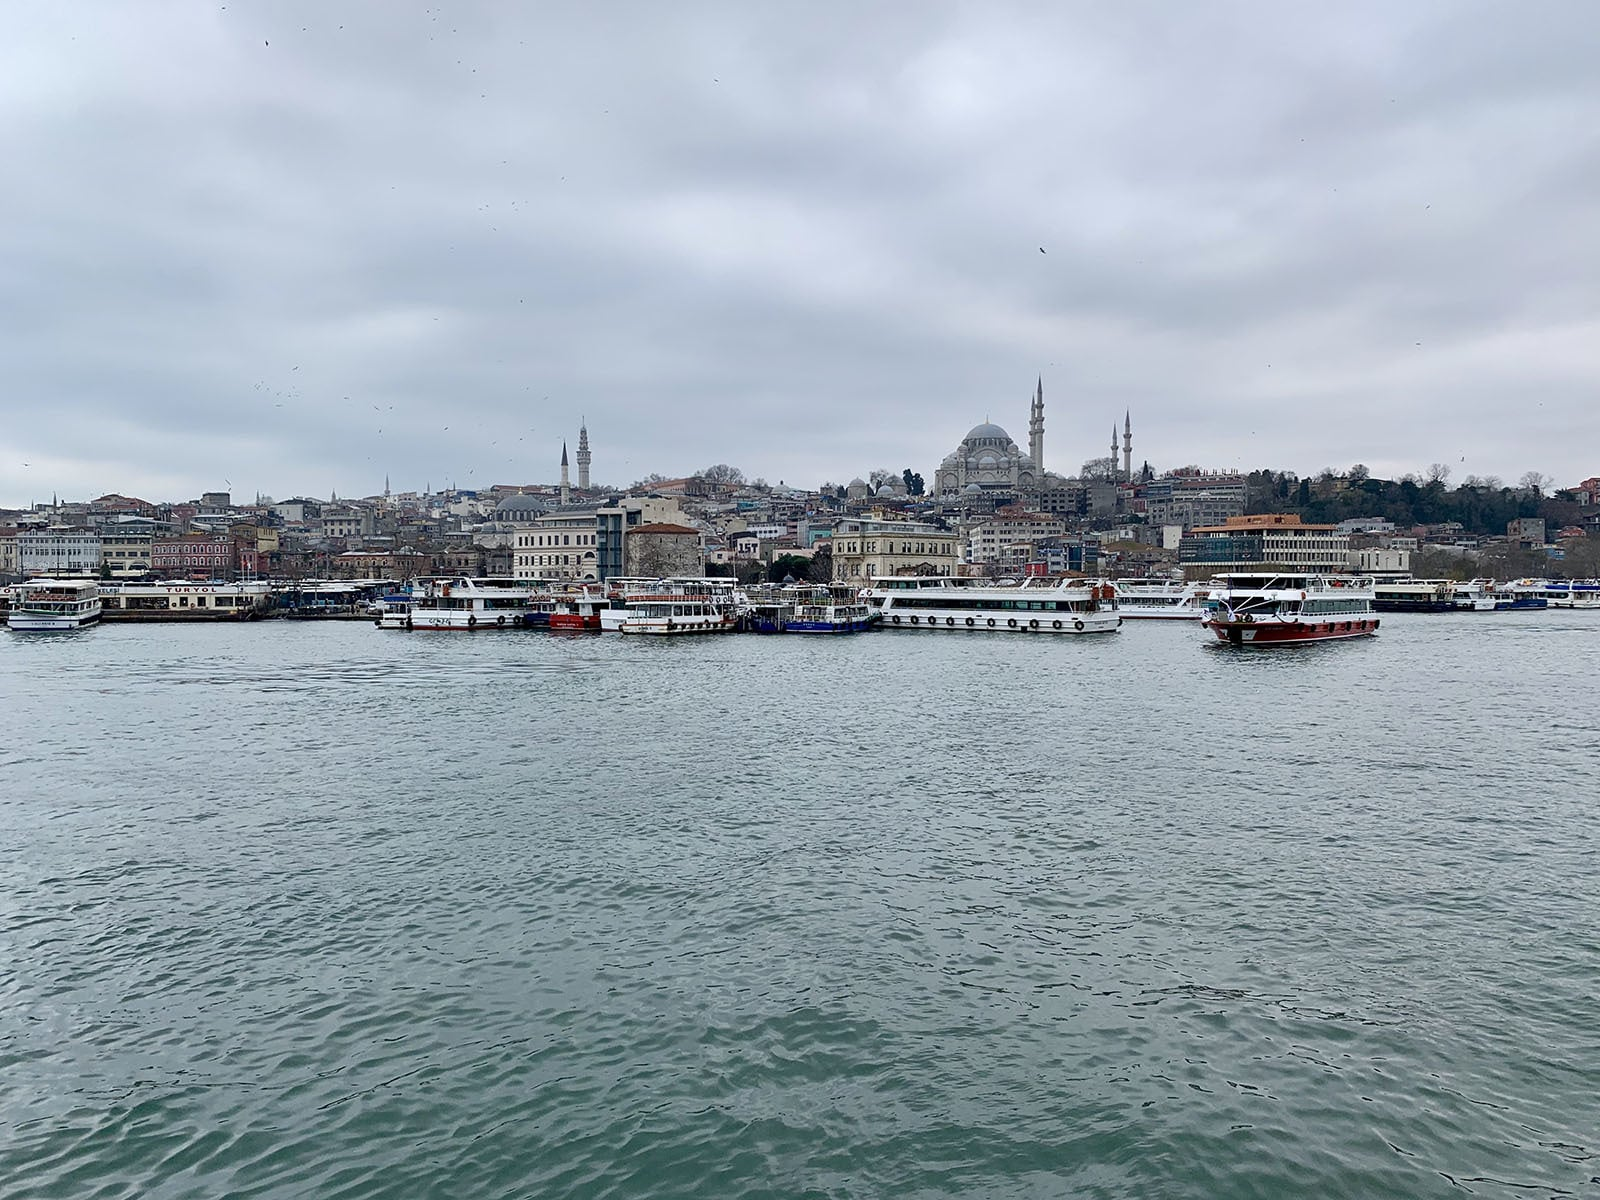 View of the historical Fatih district on the ferry from Karaköy to Balat.